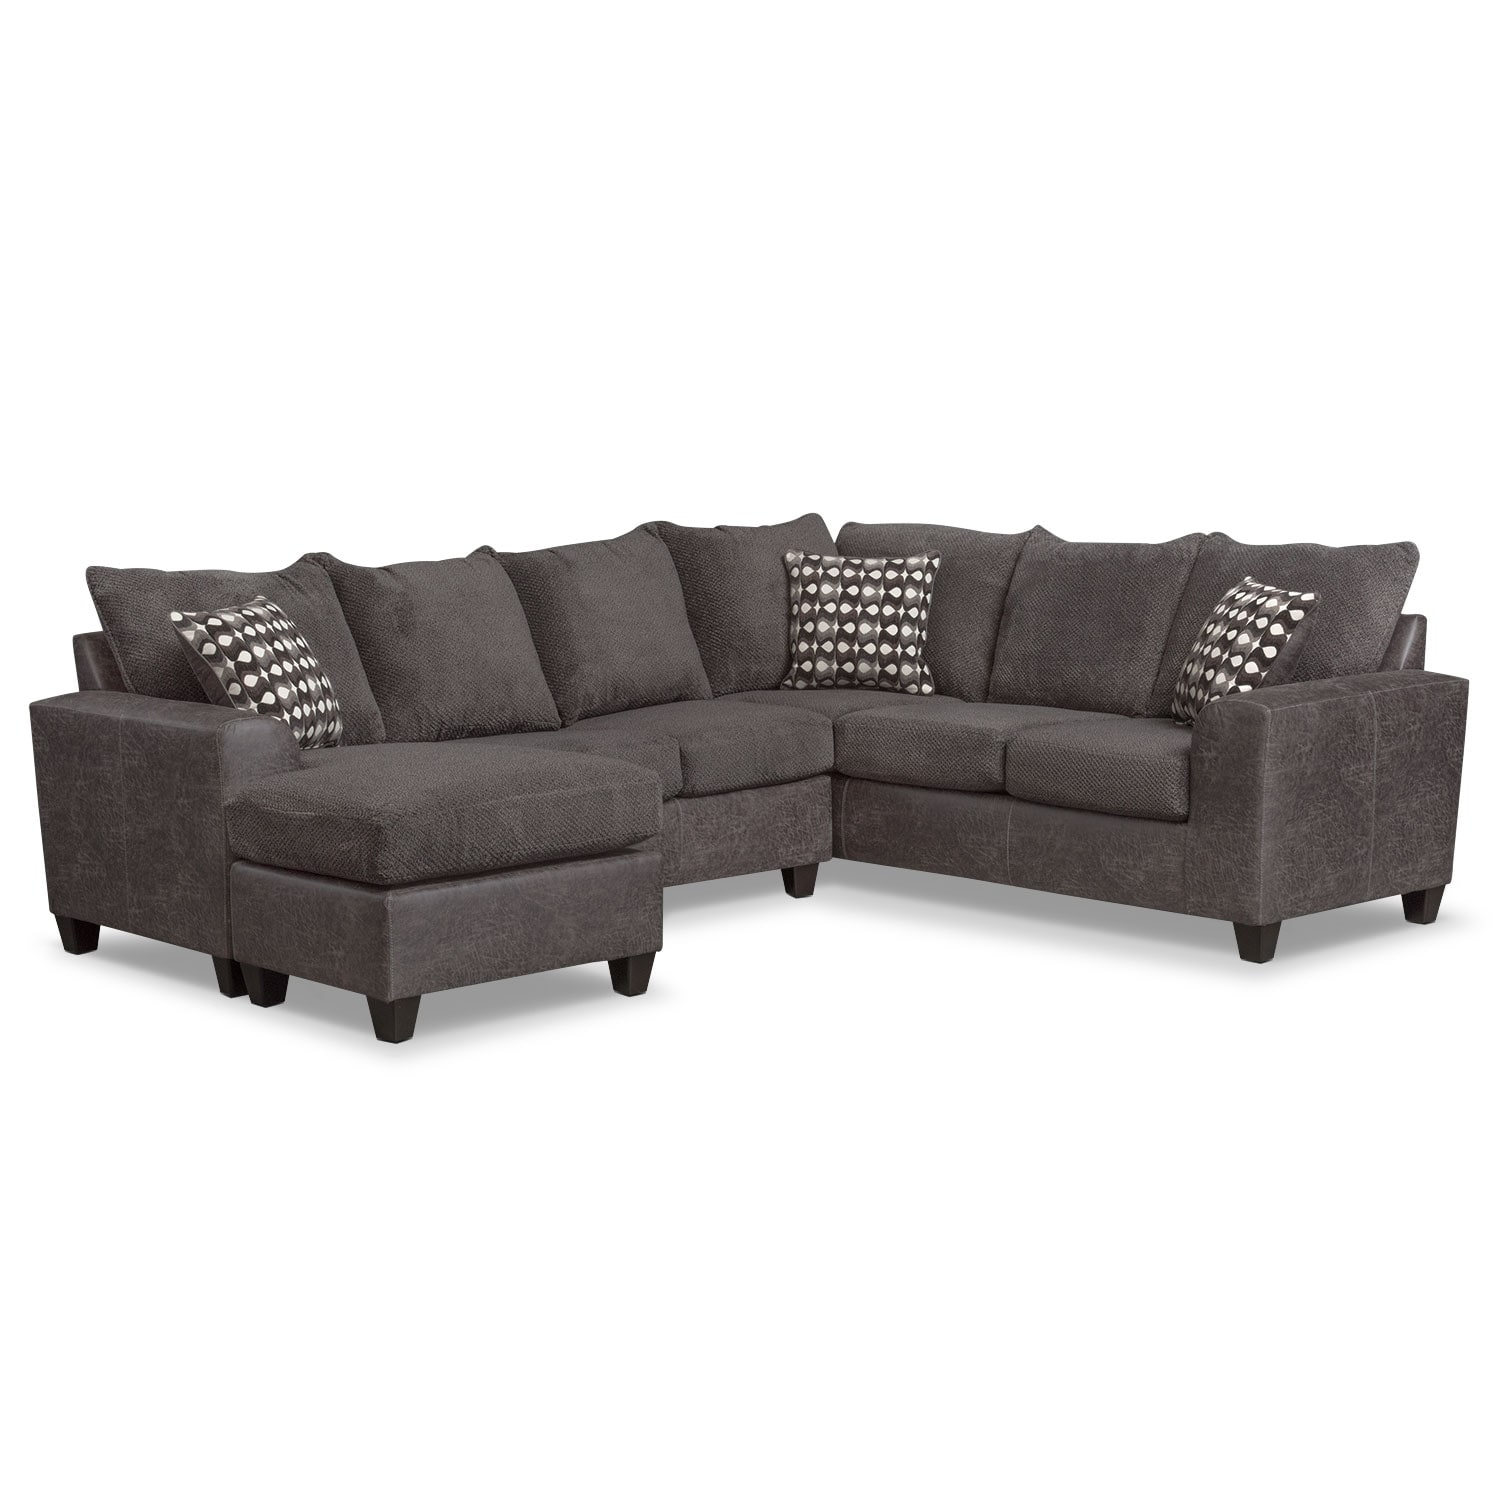 brando 3 piece sectional with modular chaise